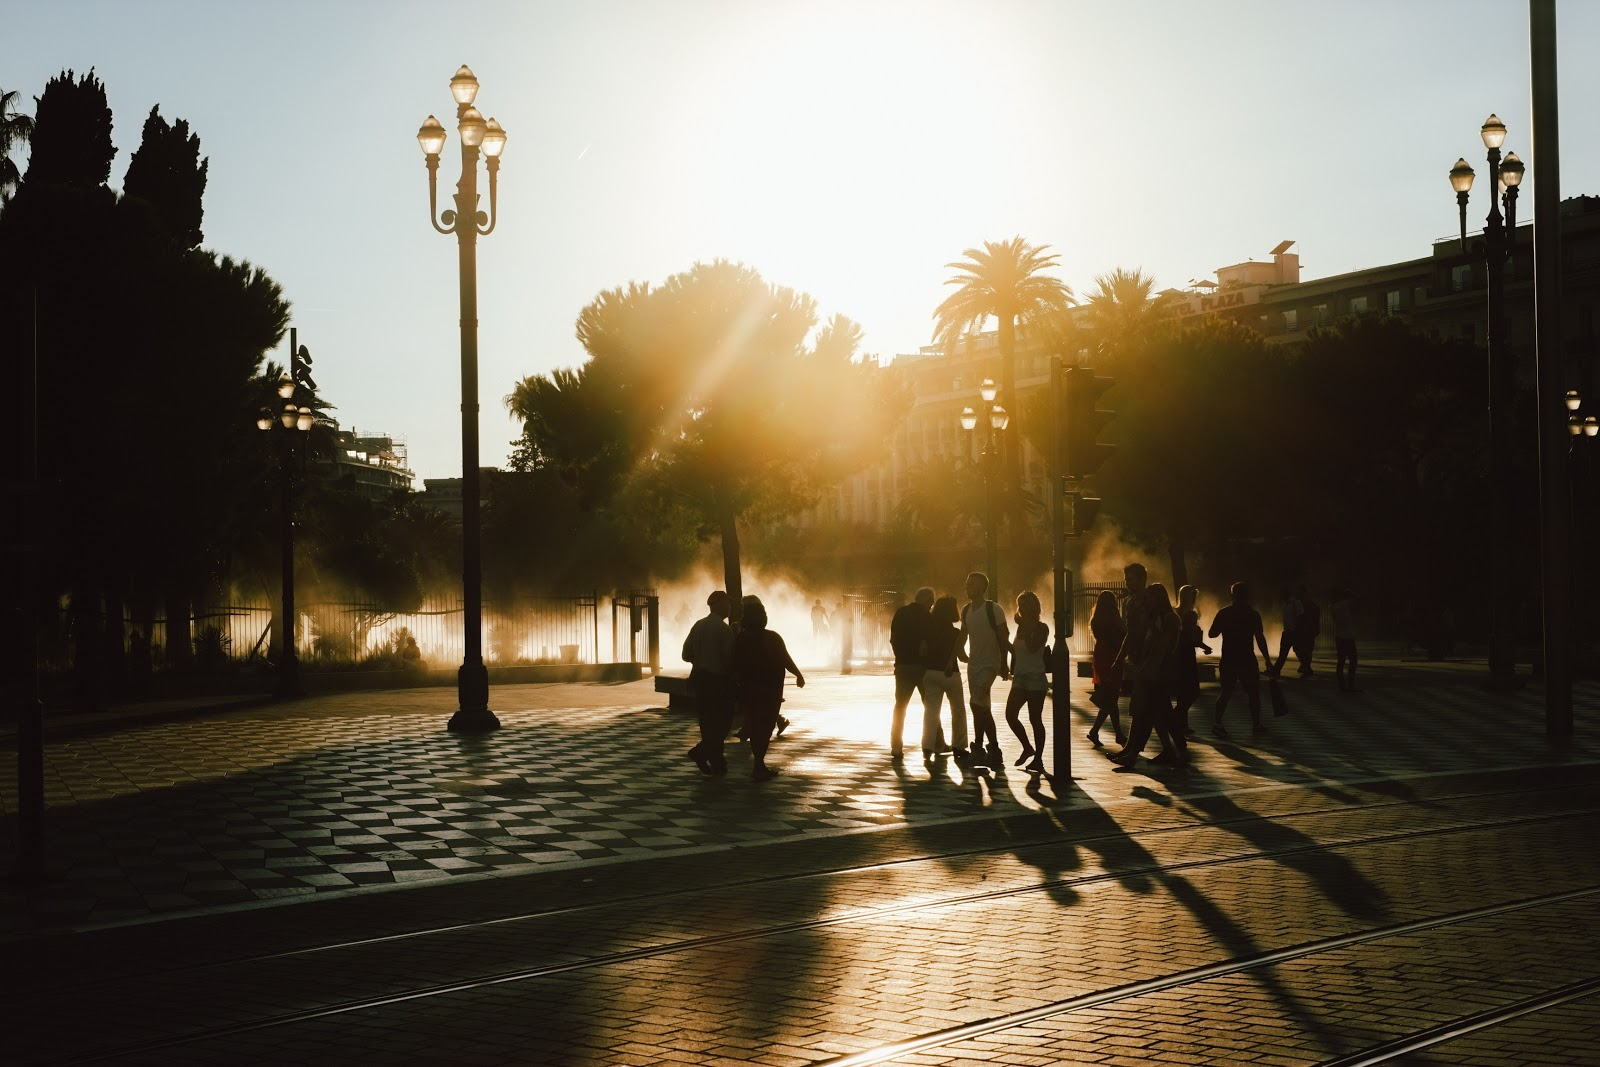 people walking on a pavement during sunset